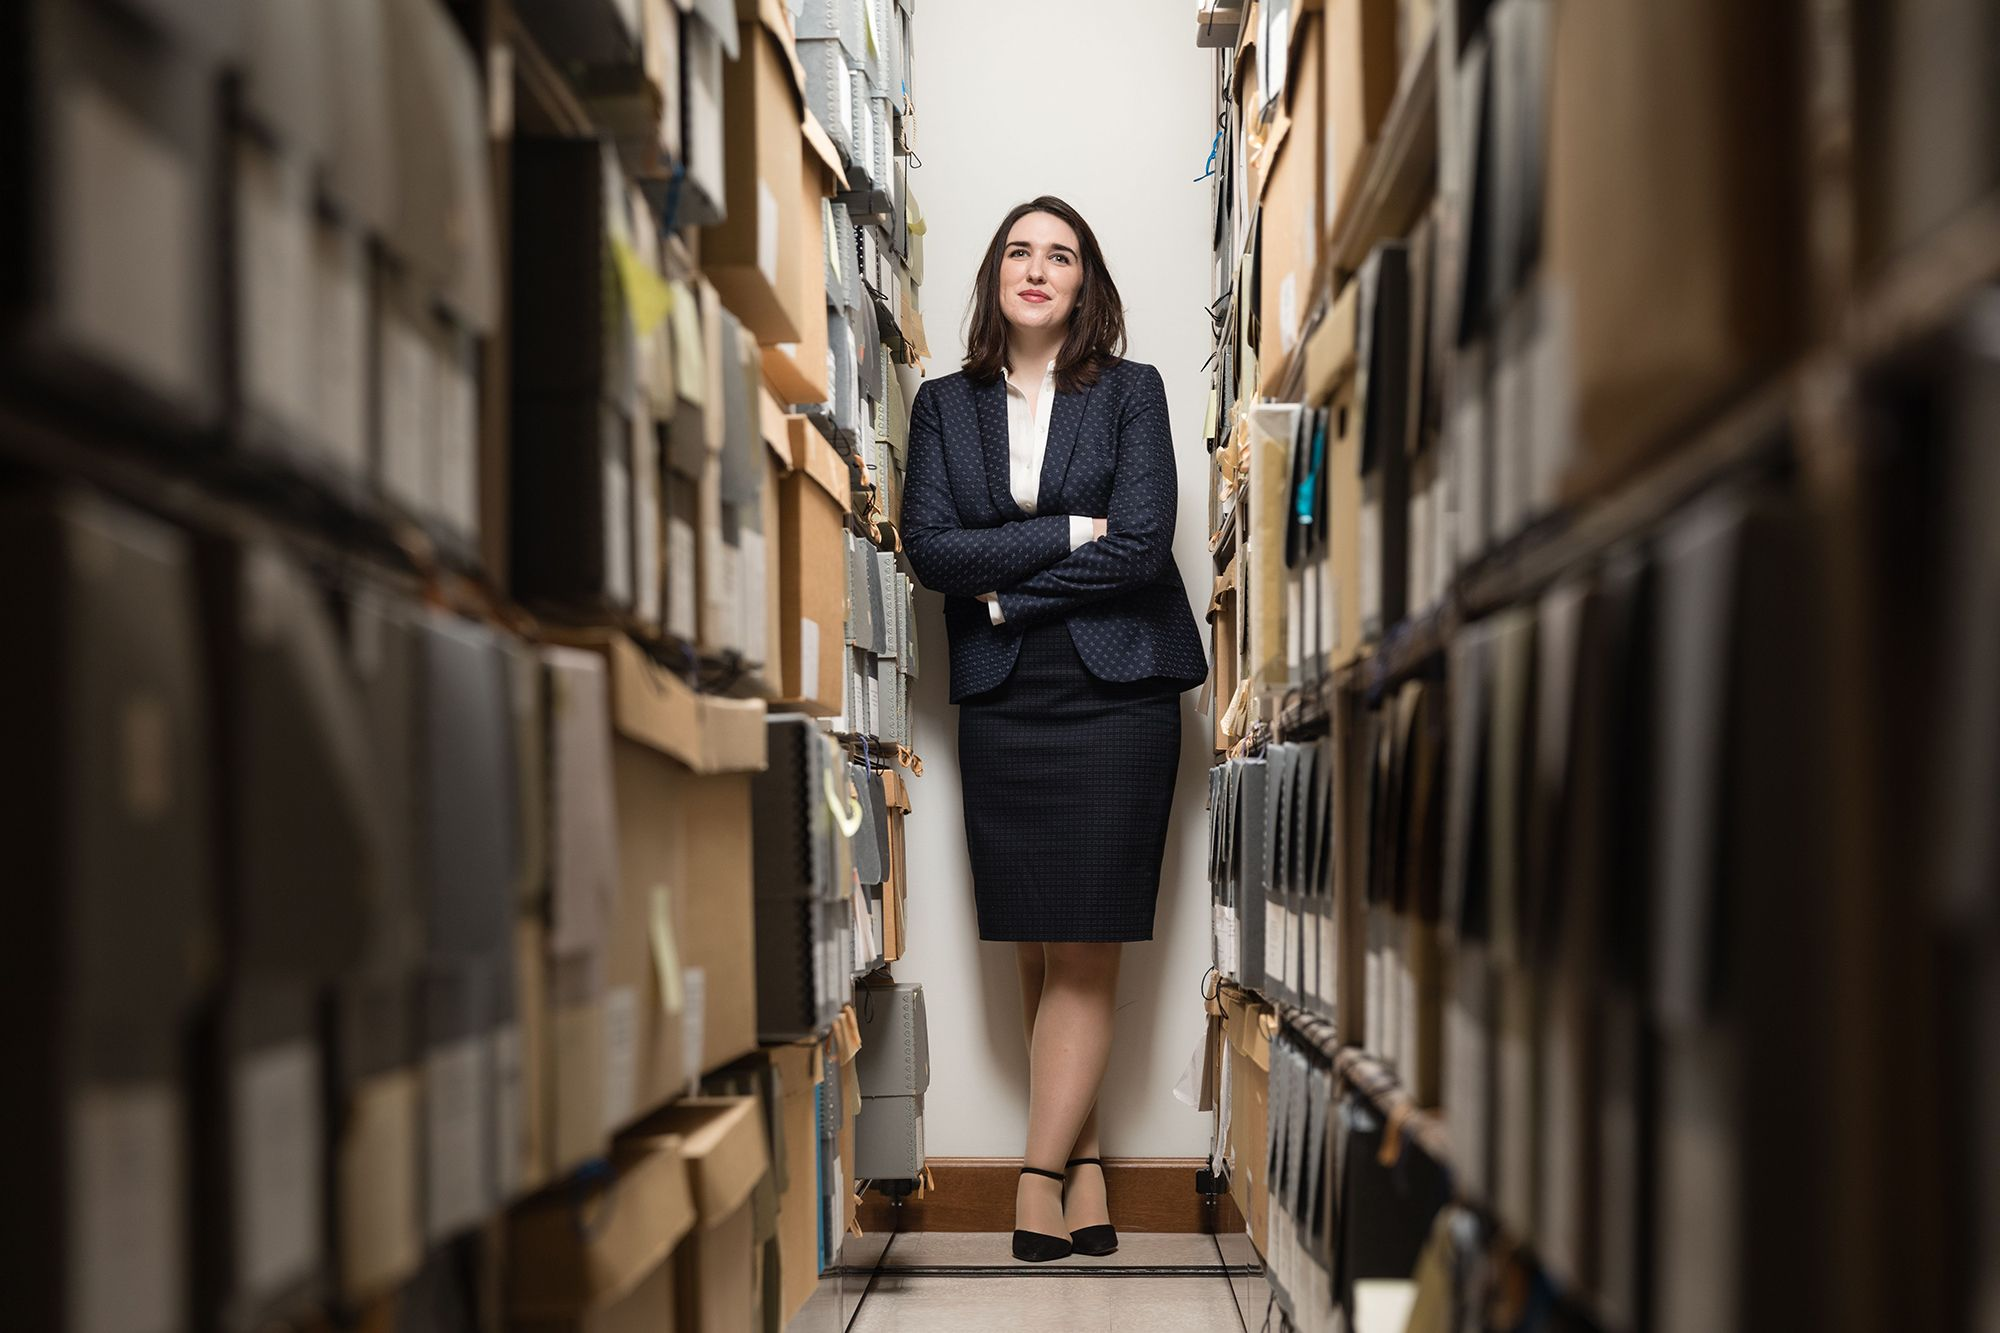 Rebecca Charbonneau '16 portrait among boxes of art history archives and materials.